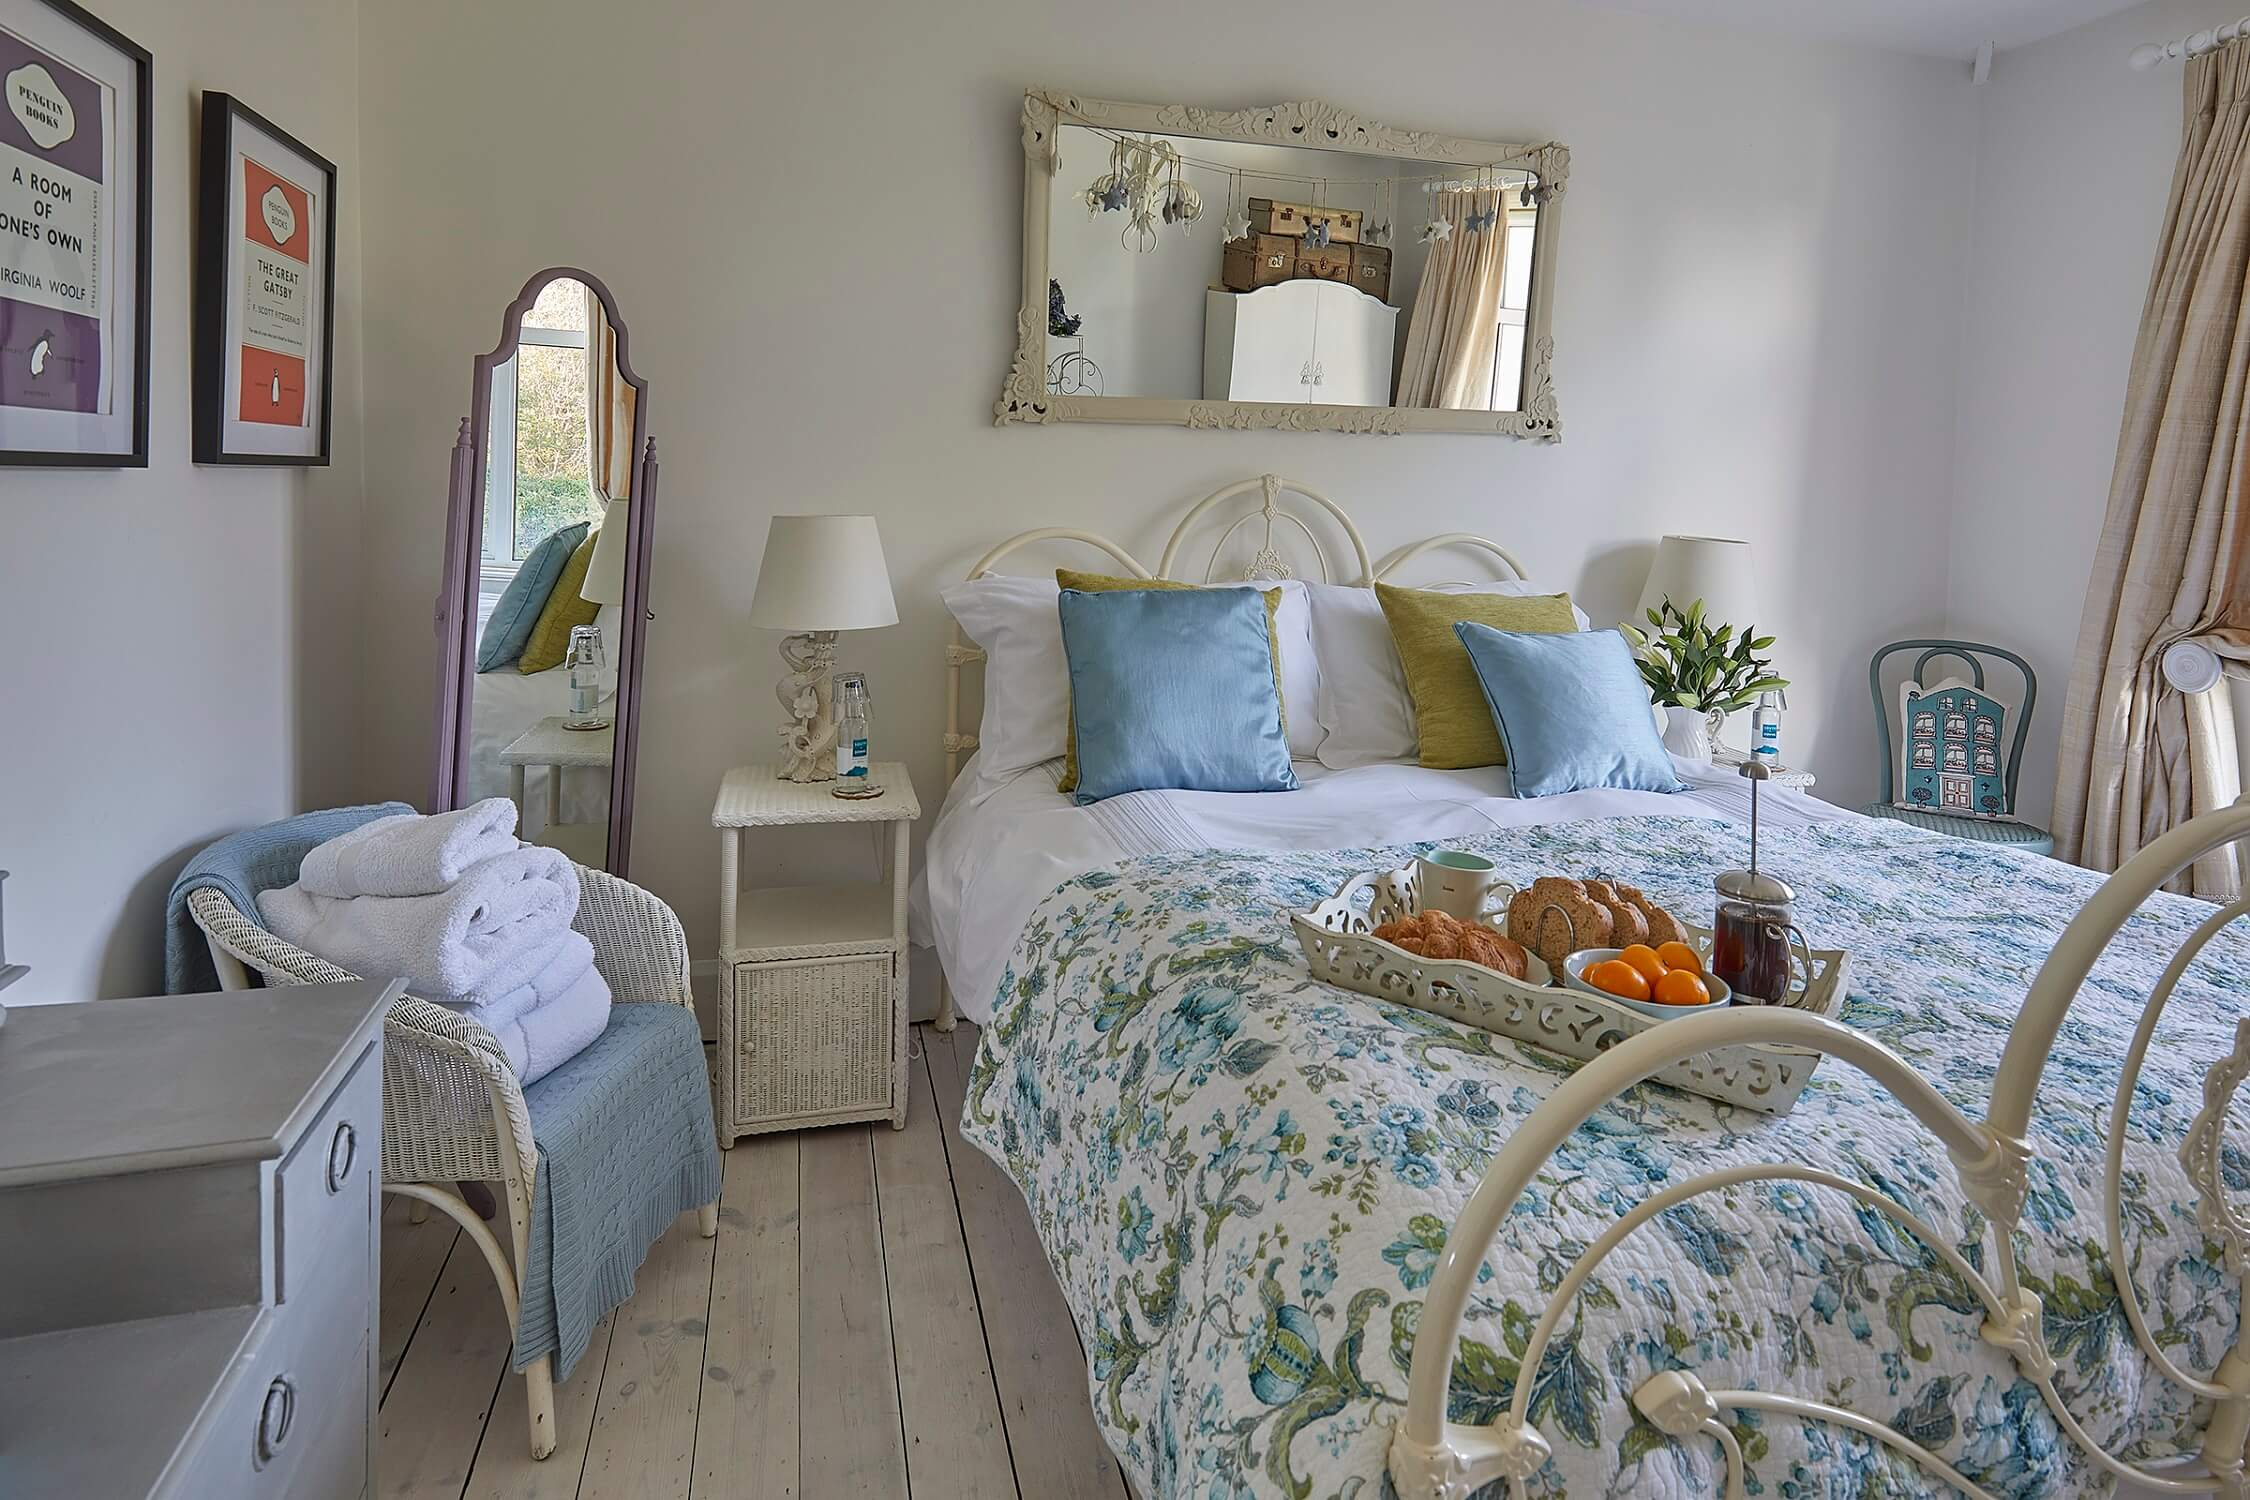 Hollies House - Ideal group getaway in Sussex - Bedroom with Feather and Black bed